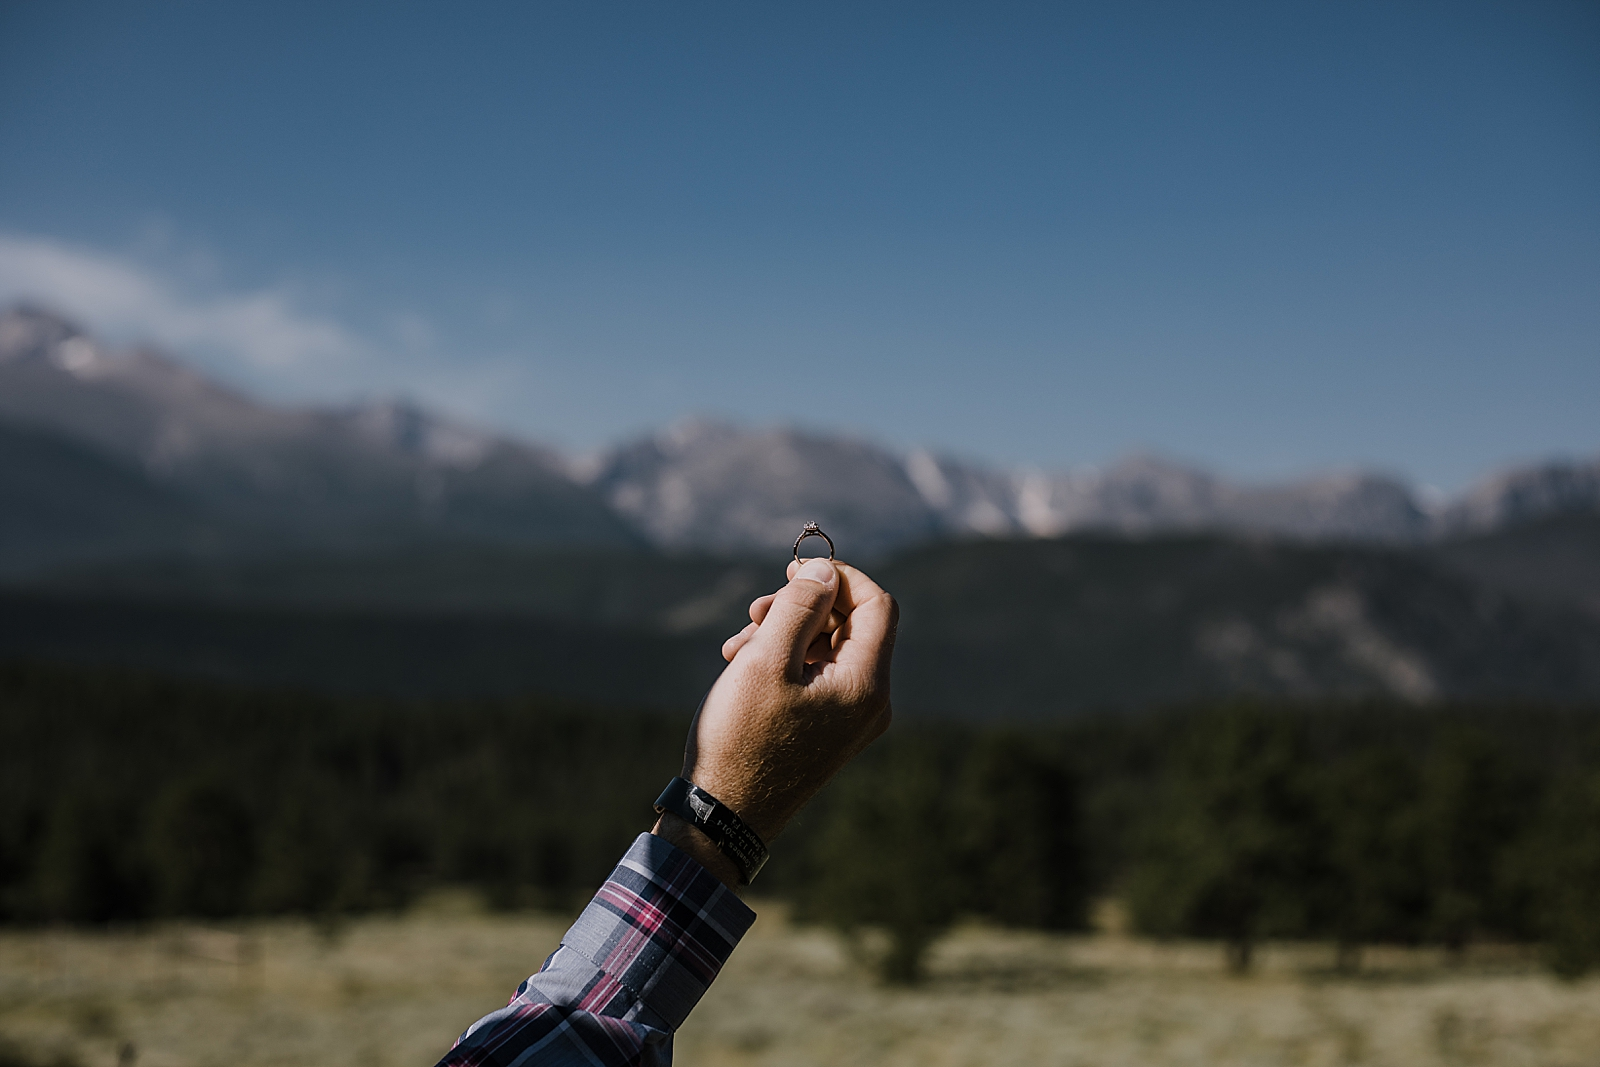 kay jewelers wedding ring, rocky mountain national park elopement, 3M curves elopement, self solemnizing, self solemnization, long's peak ceremony, hiking elopement, estes park elopement